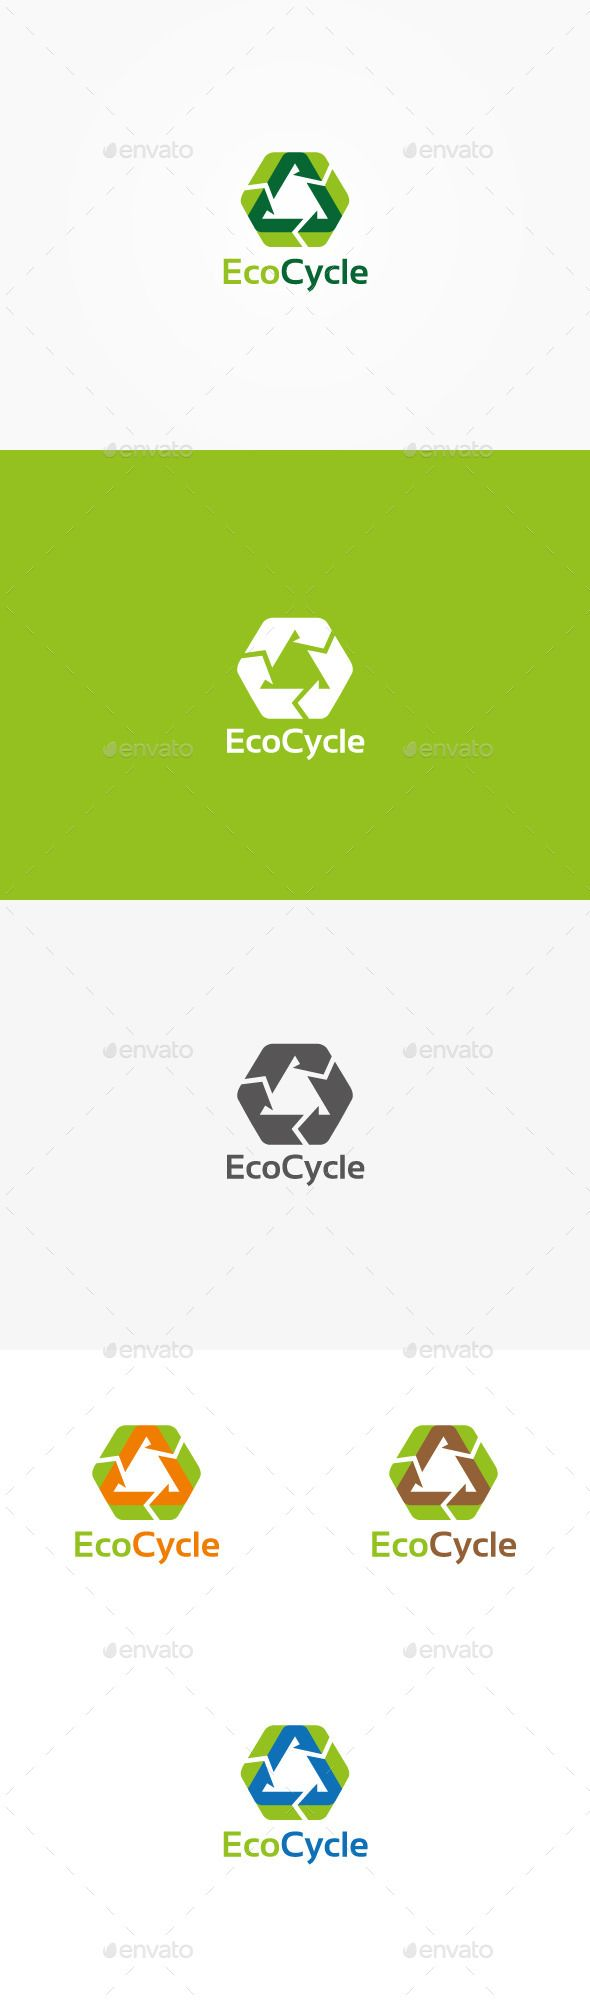 74 Best Logos Icons Images On Pinterest Recycling Logo Graphic